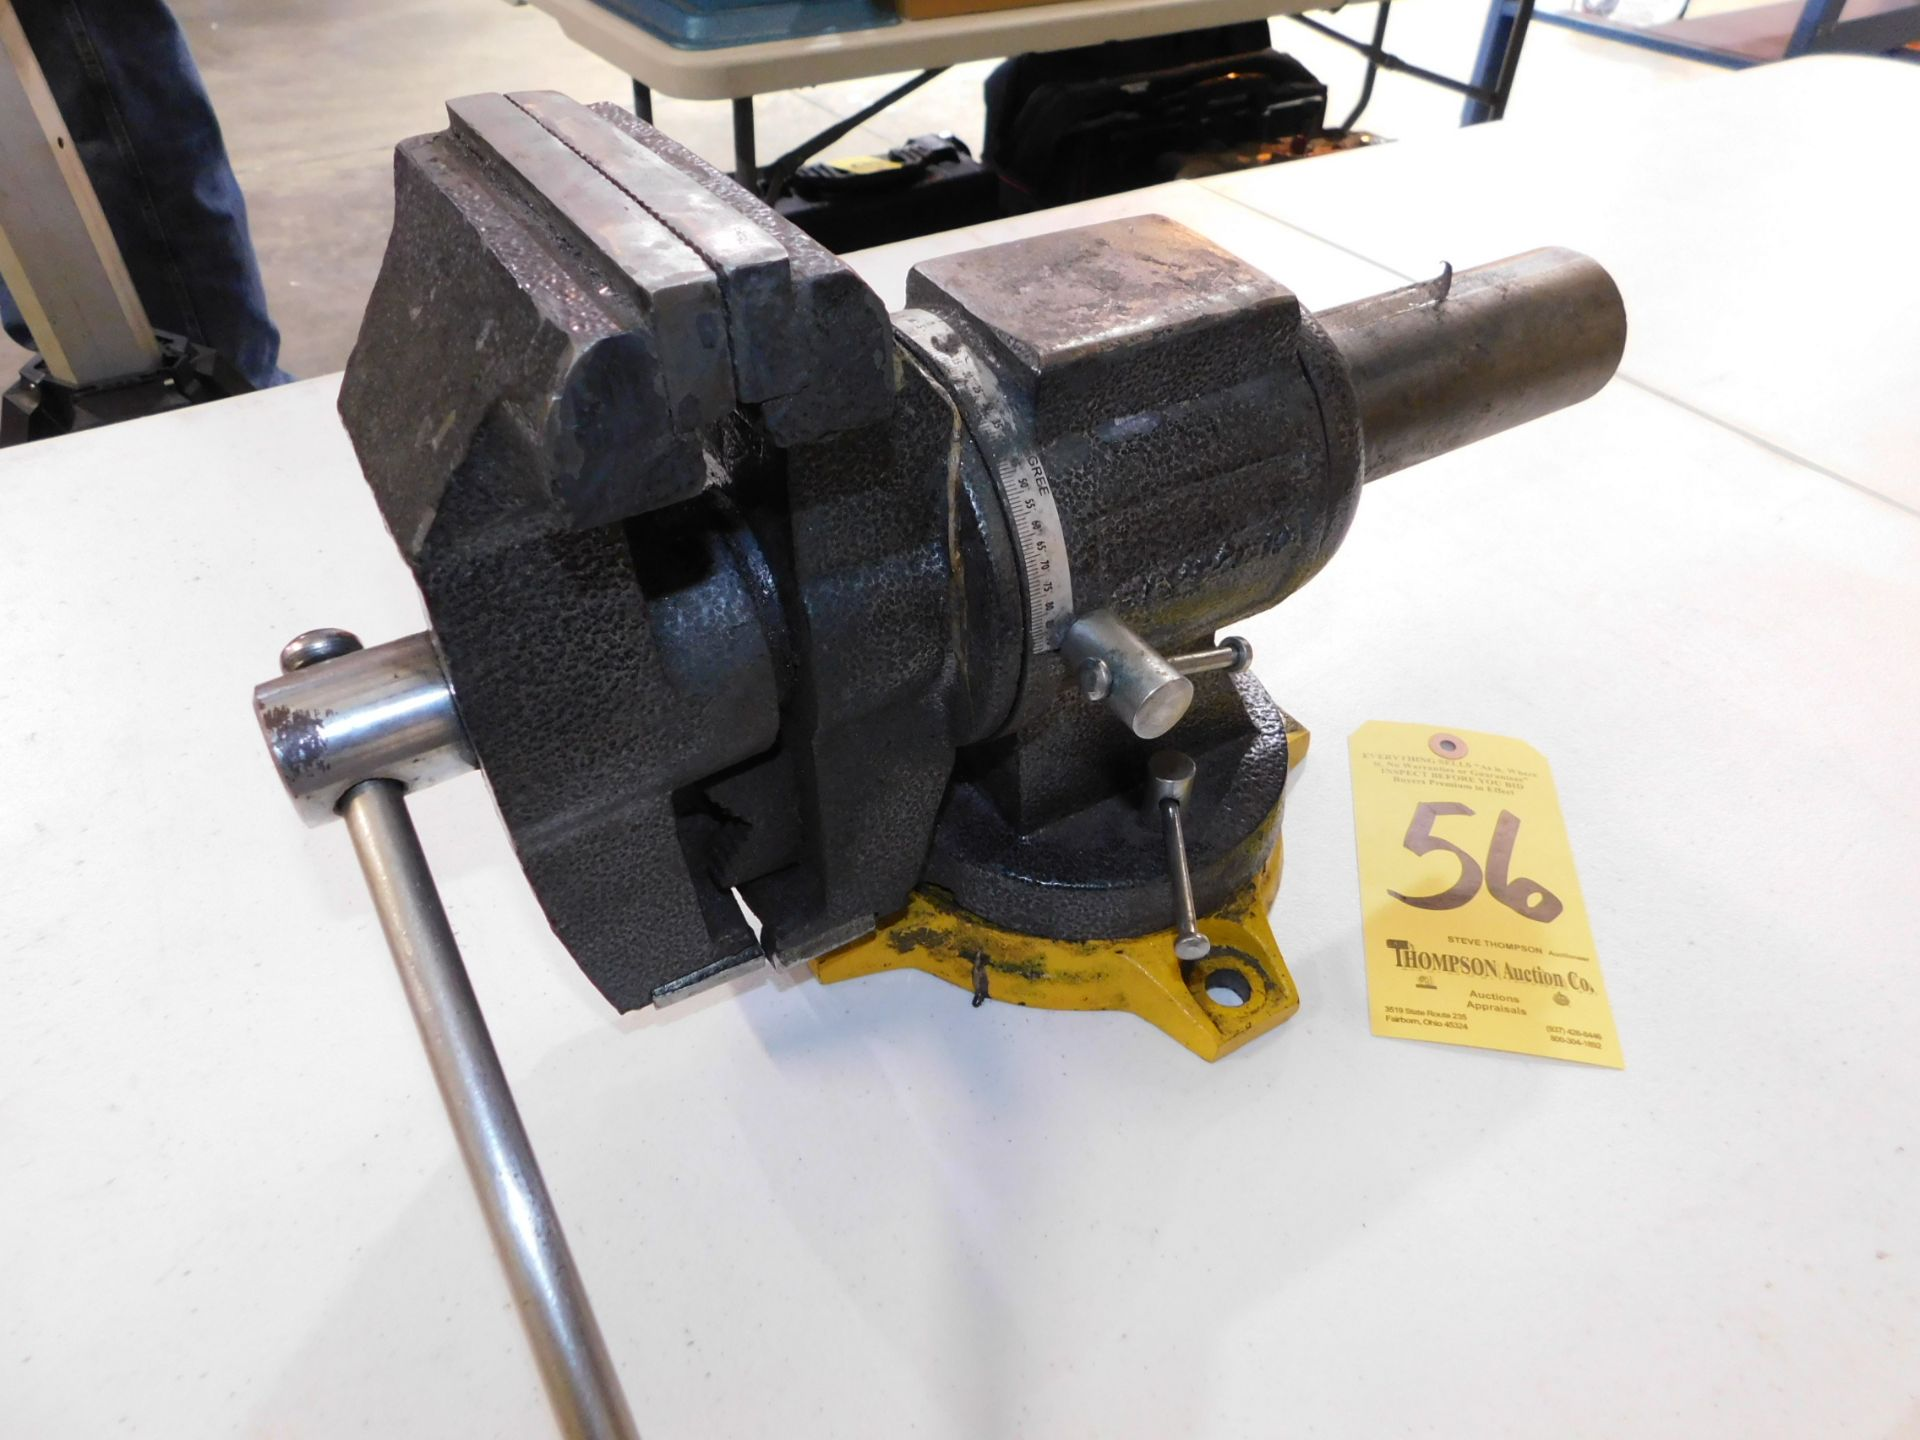 """Lot 56 - 5"""" Bench Vise, Lot Location 3204 Olympia Dr. A, Lafayette, IN 47909"""